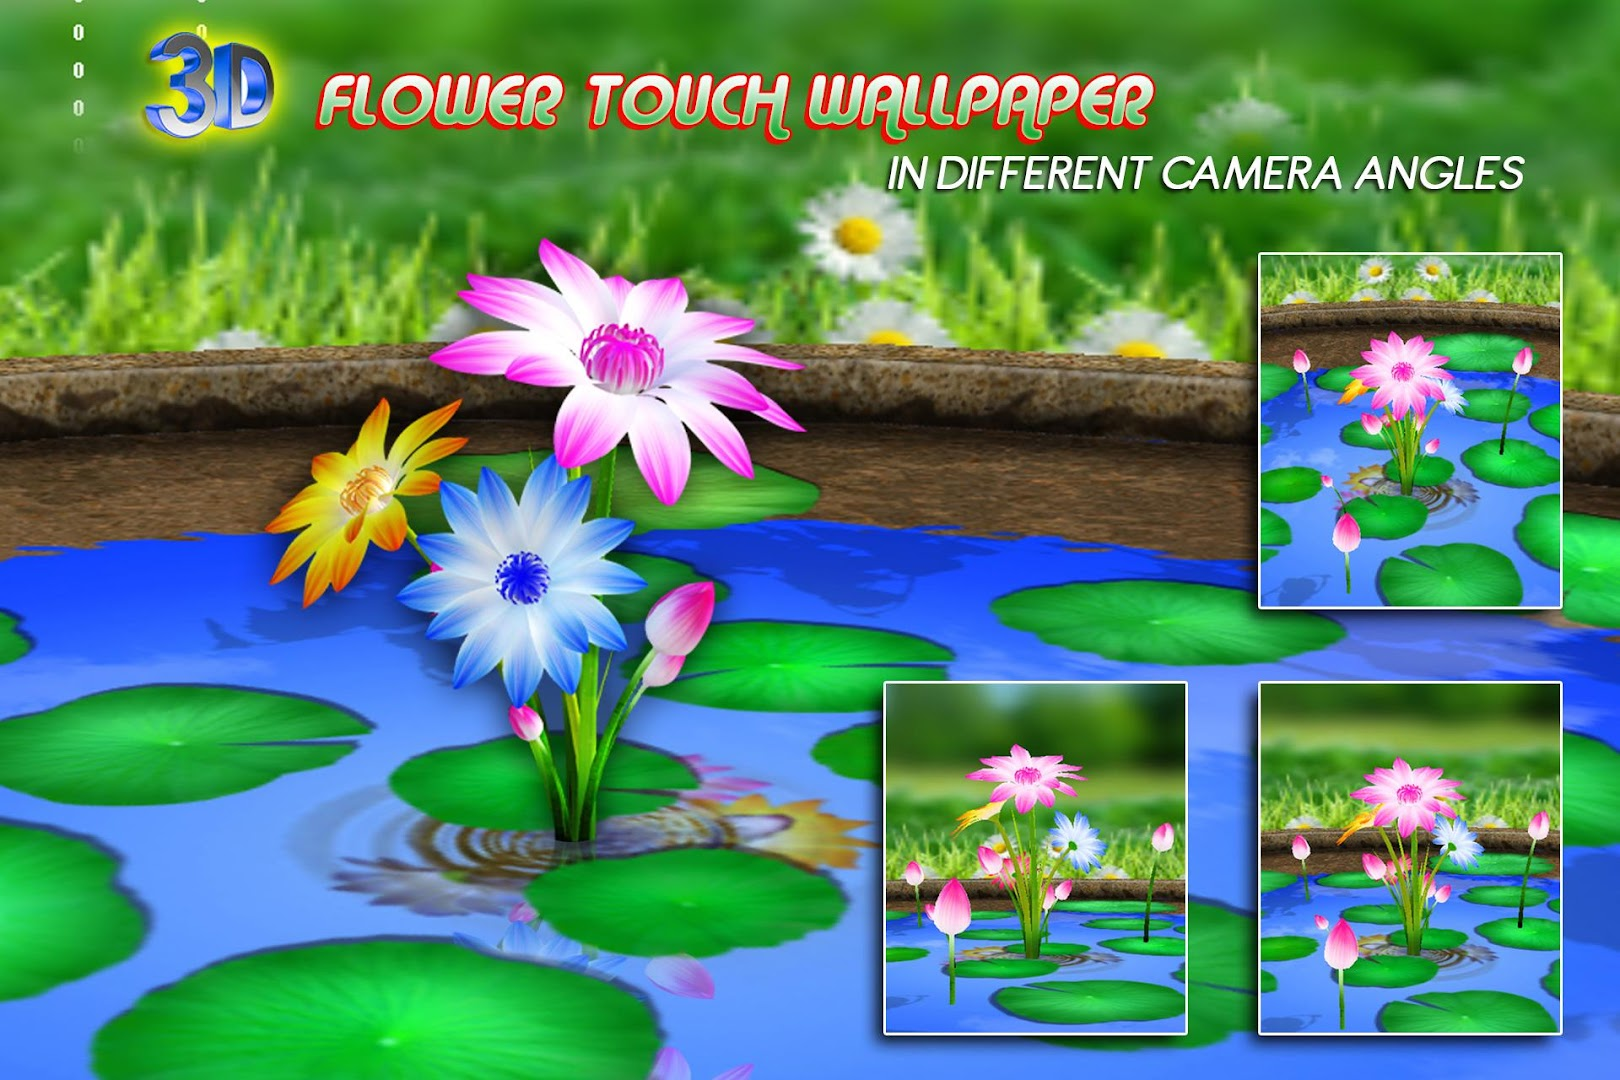 Wallpaper download app - 3d Flowers Touch Wallpaper Google Play Store Revenue Download Estimates Israel